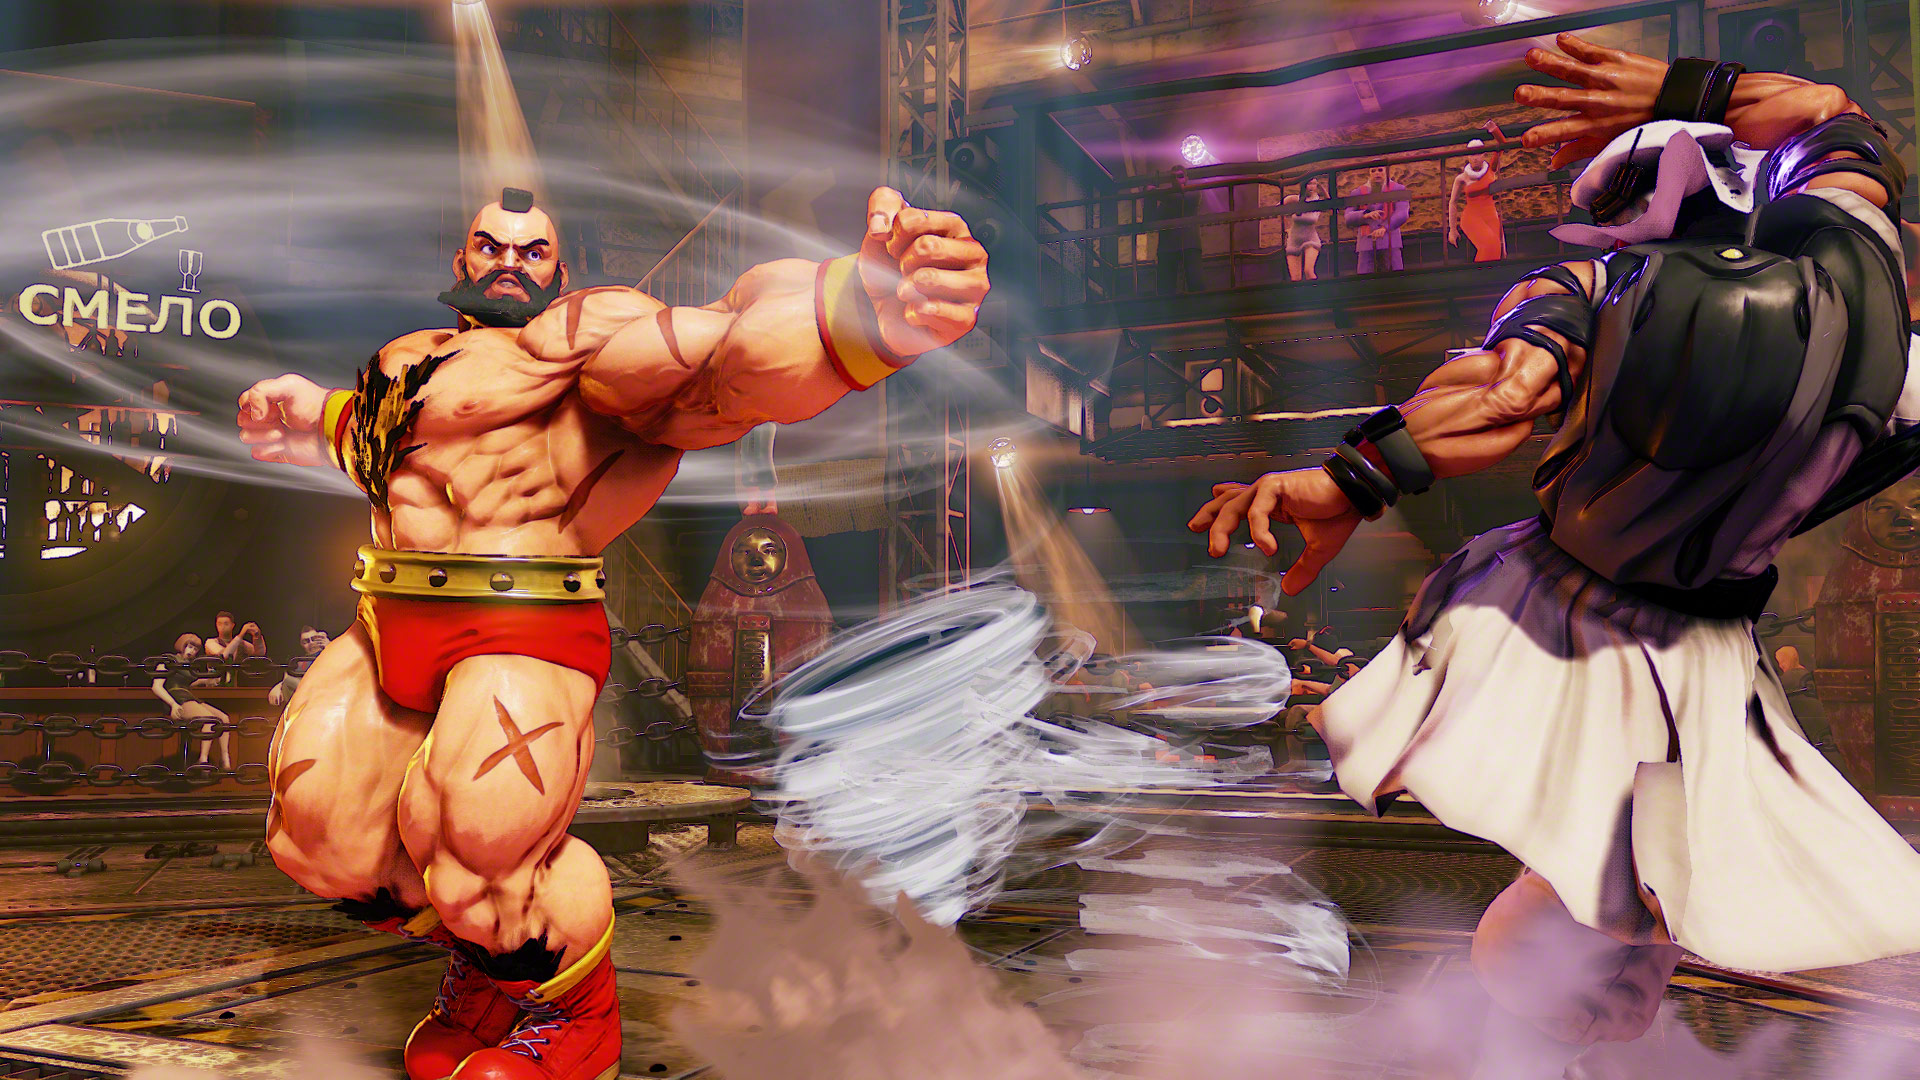 Zangief returns in Street Fighter 5 11 out of 18 image gallery